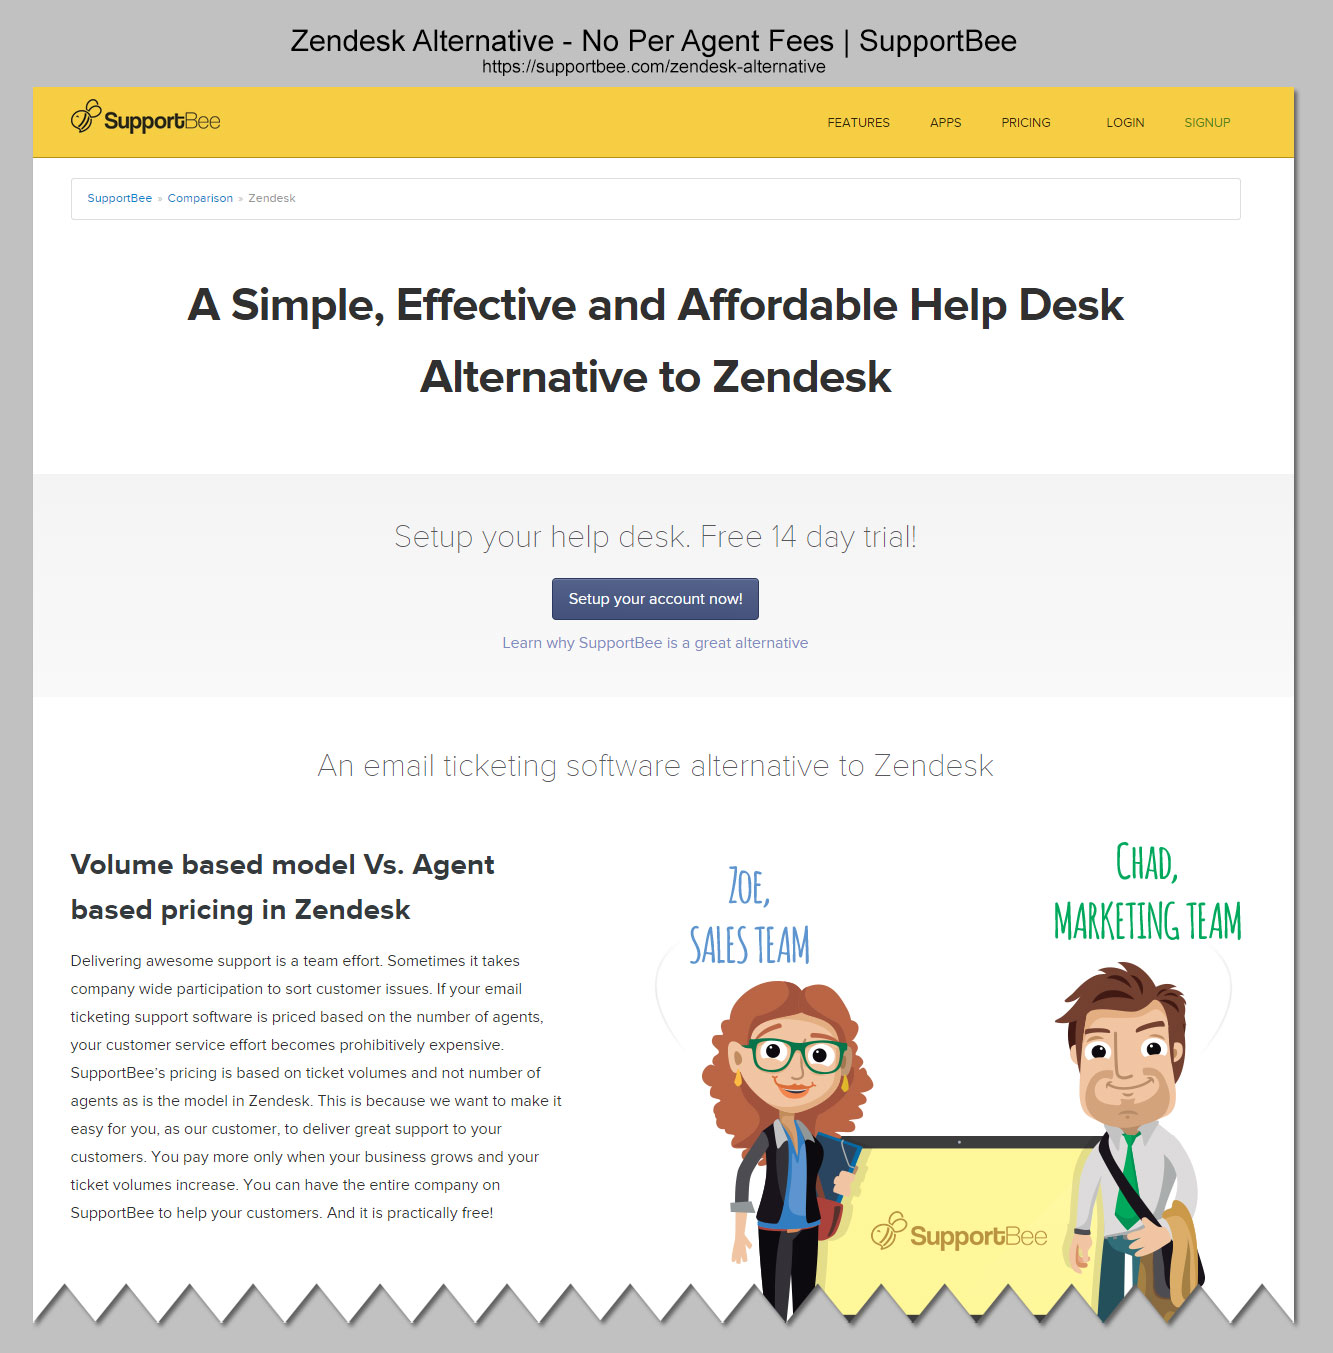 supportbee-zendesk-alternative